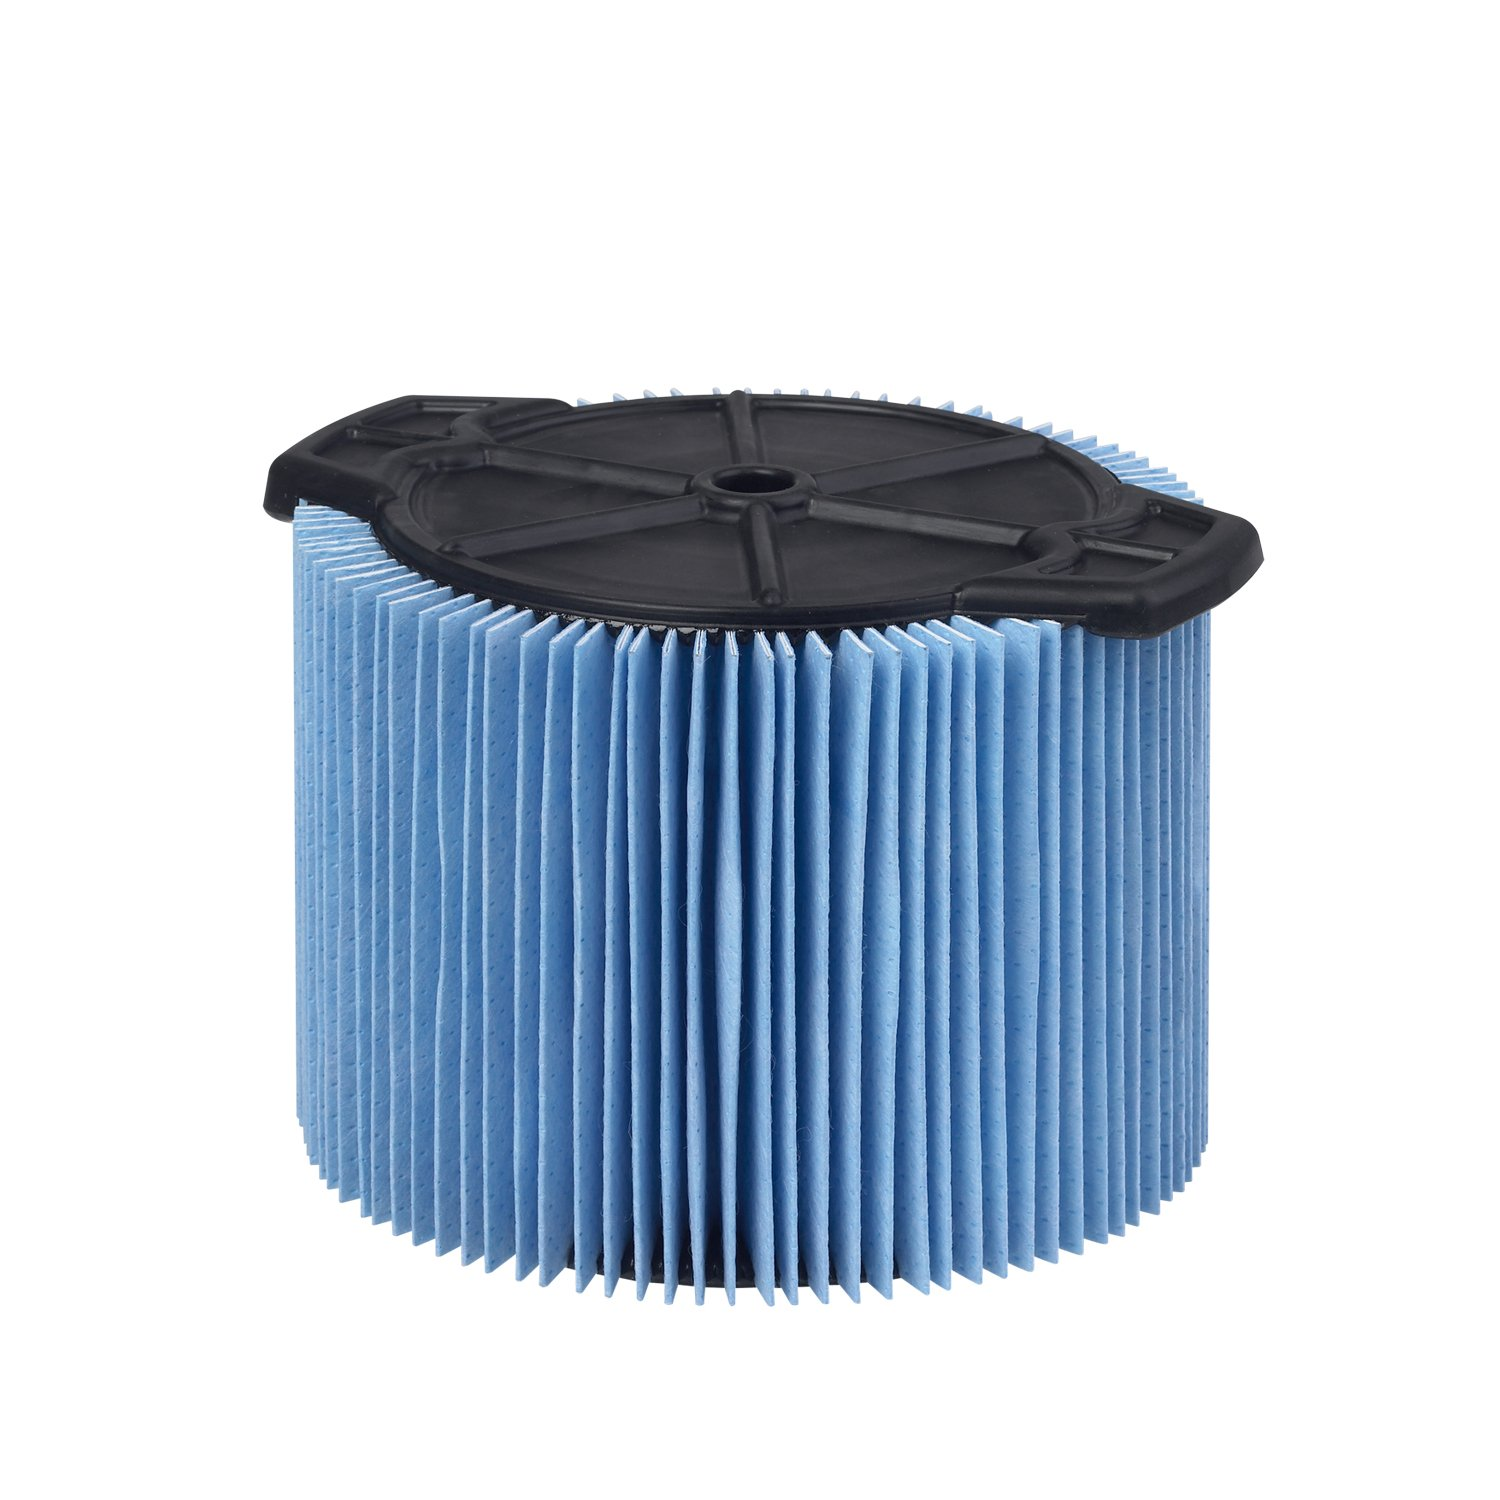 WORKSHOP Wet Dry Vac Filter WS12045F Fine Dust Wet Dry Vacuum Filter (Single Shop Vacuum Cleaner Filter Cartridge) For WORKSHOP  3-Gallon to 4-1/2-Gallon Shop Vacuum Cleaners